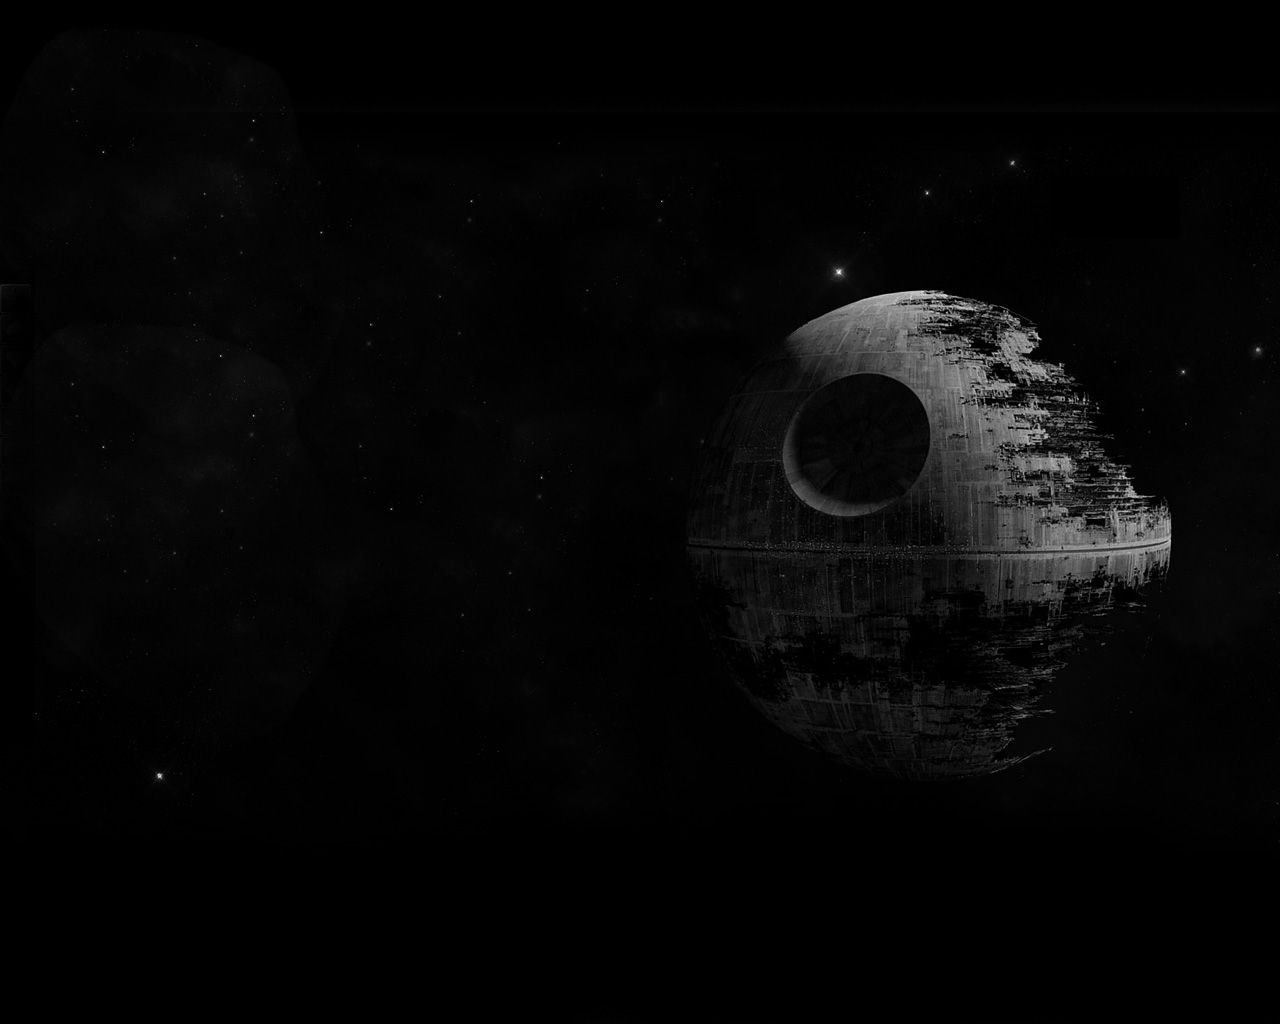 star wars computer wallpaper, desktop background | 1280x1024 | id